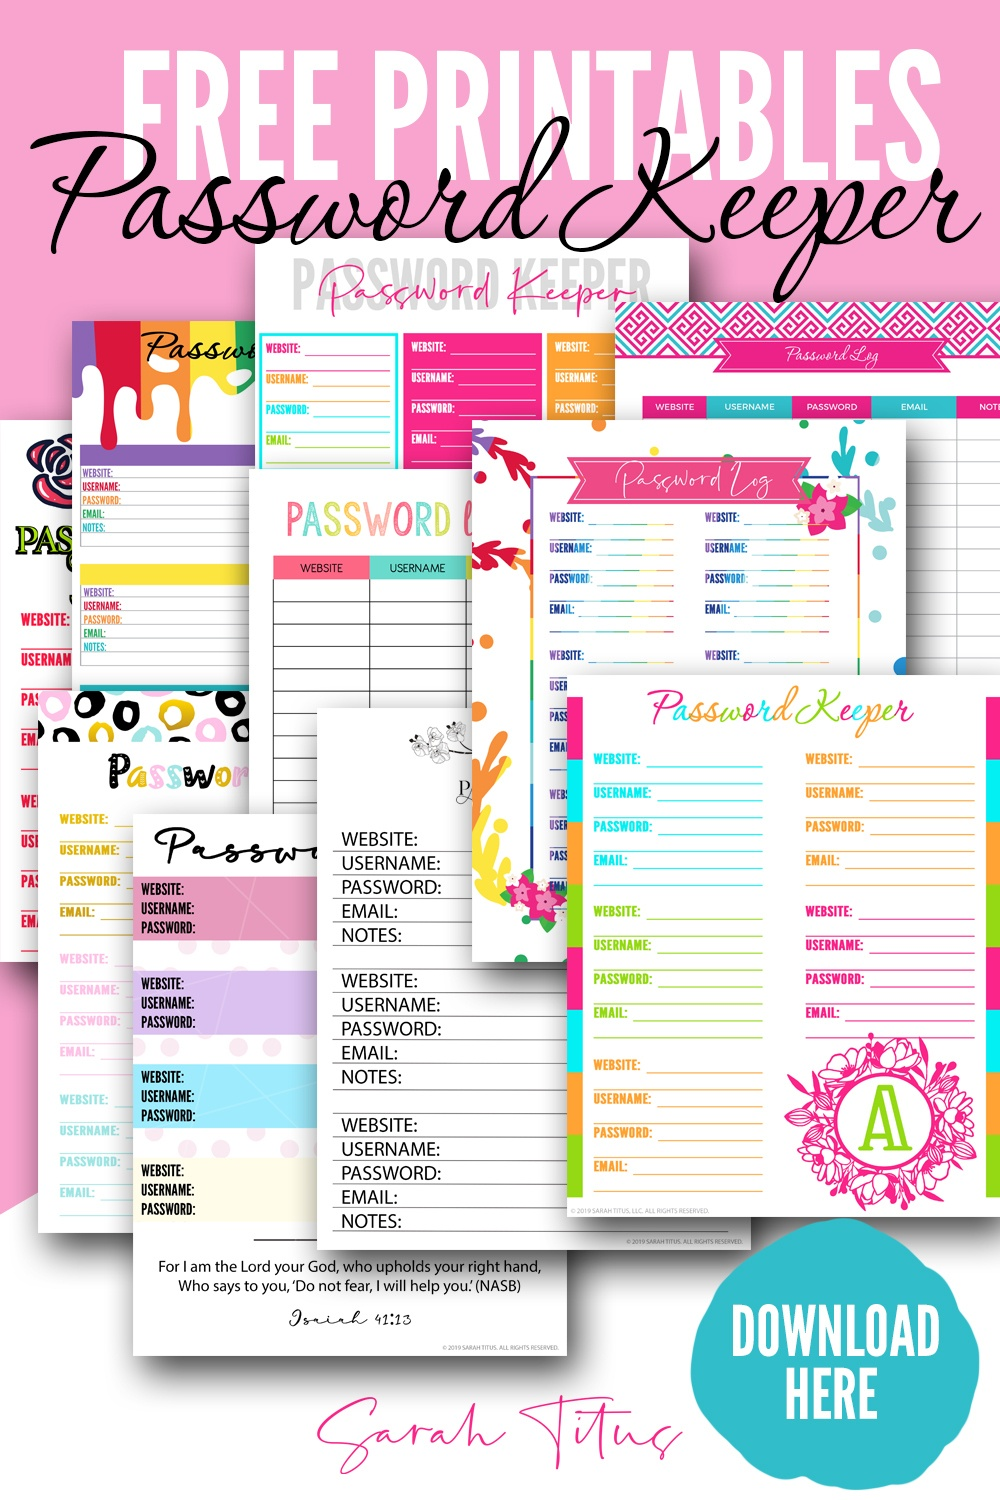 Top Password Keeper Free Printables To Download Instantly - Sarah Titus - Free Printable Password Keeper